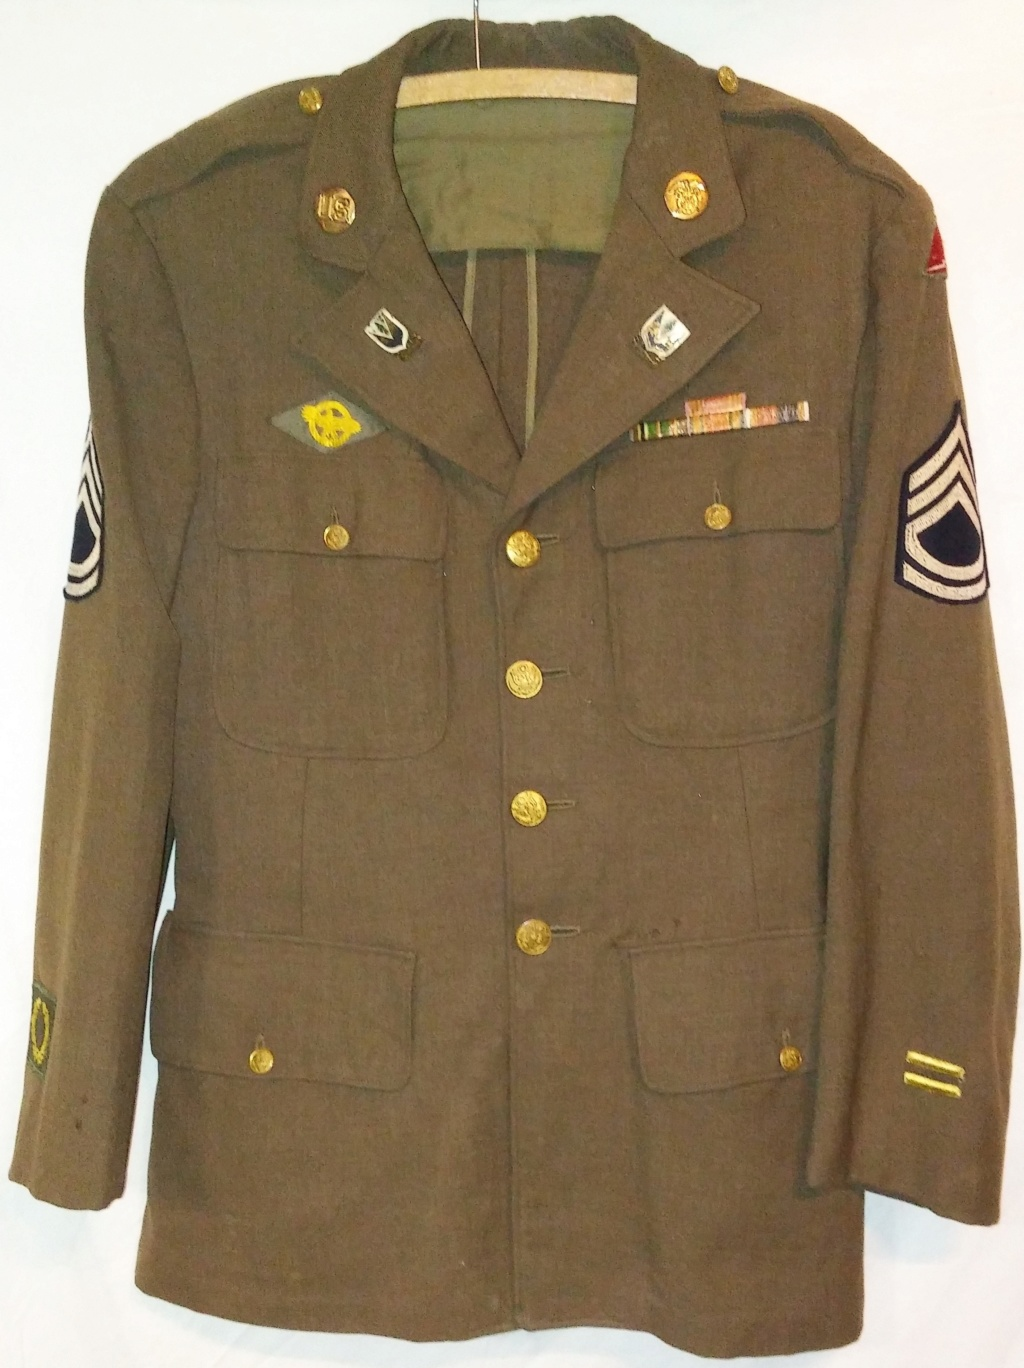 US Army 78th Division Technical Sergeant Uniform and Relics 19700272